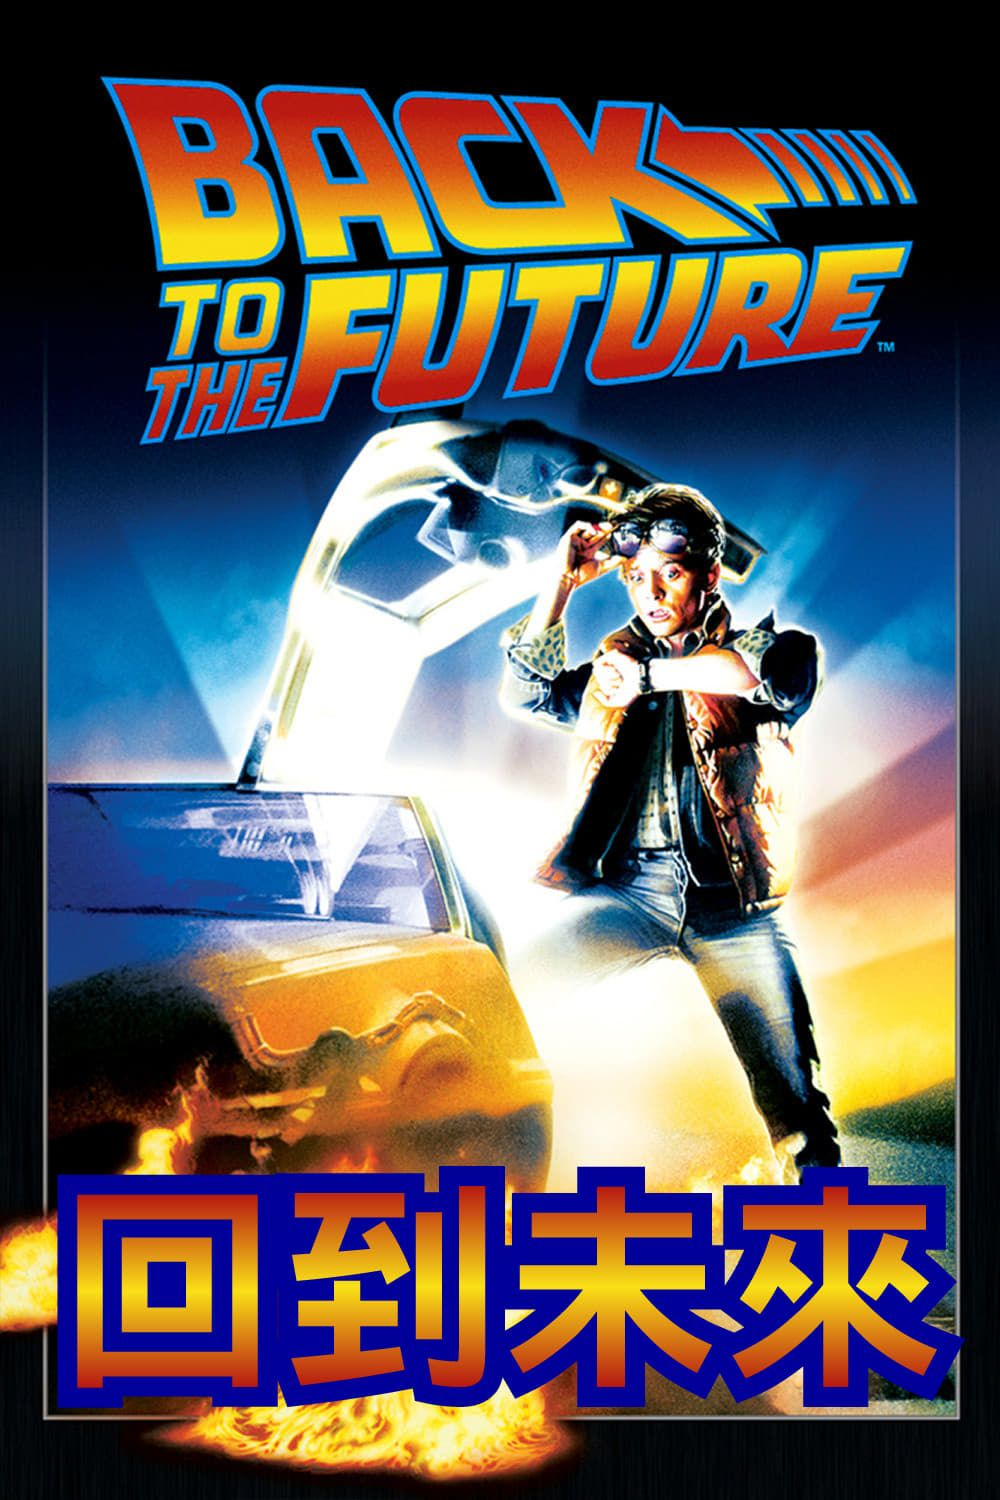 Last Ned Hele Filmen Ned ''Back to the Future'' med Norsk